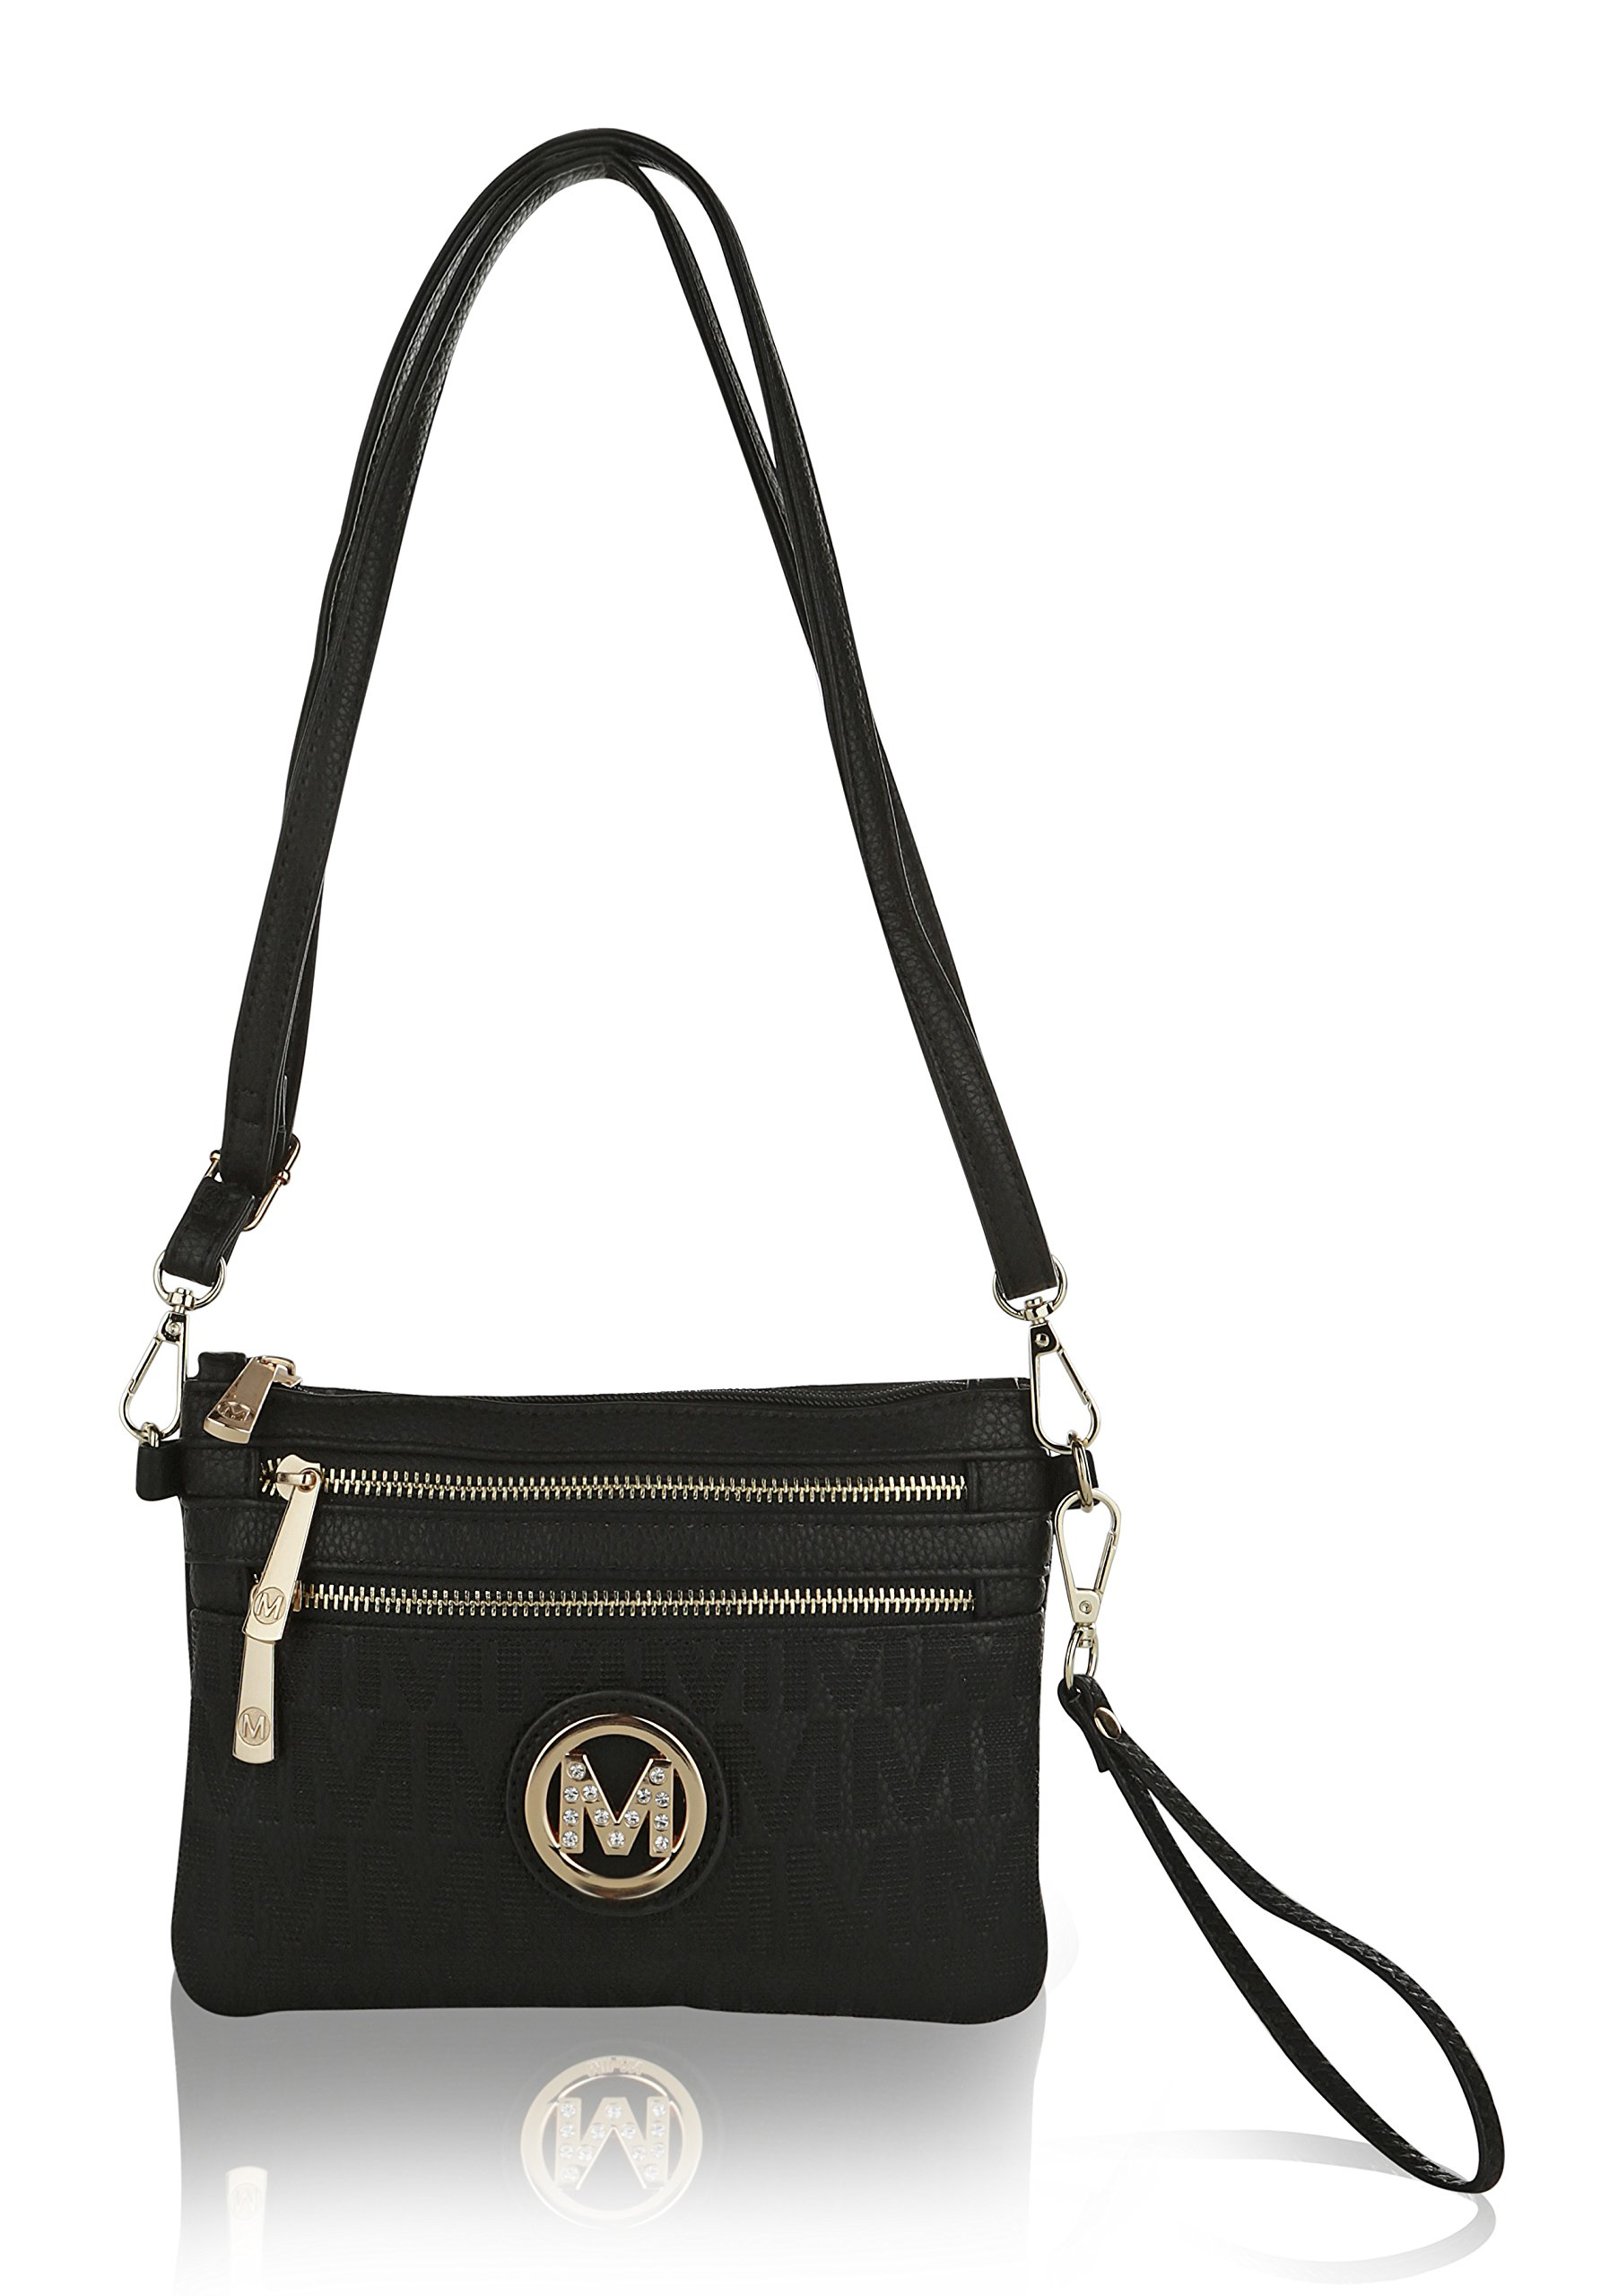 Wristlet | 2-in-1 Crossbody Bags for Women | MKF Collection Roonie Milan Signature Design by MKF Collection (Image #2)